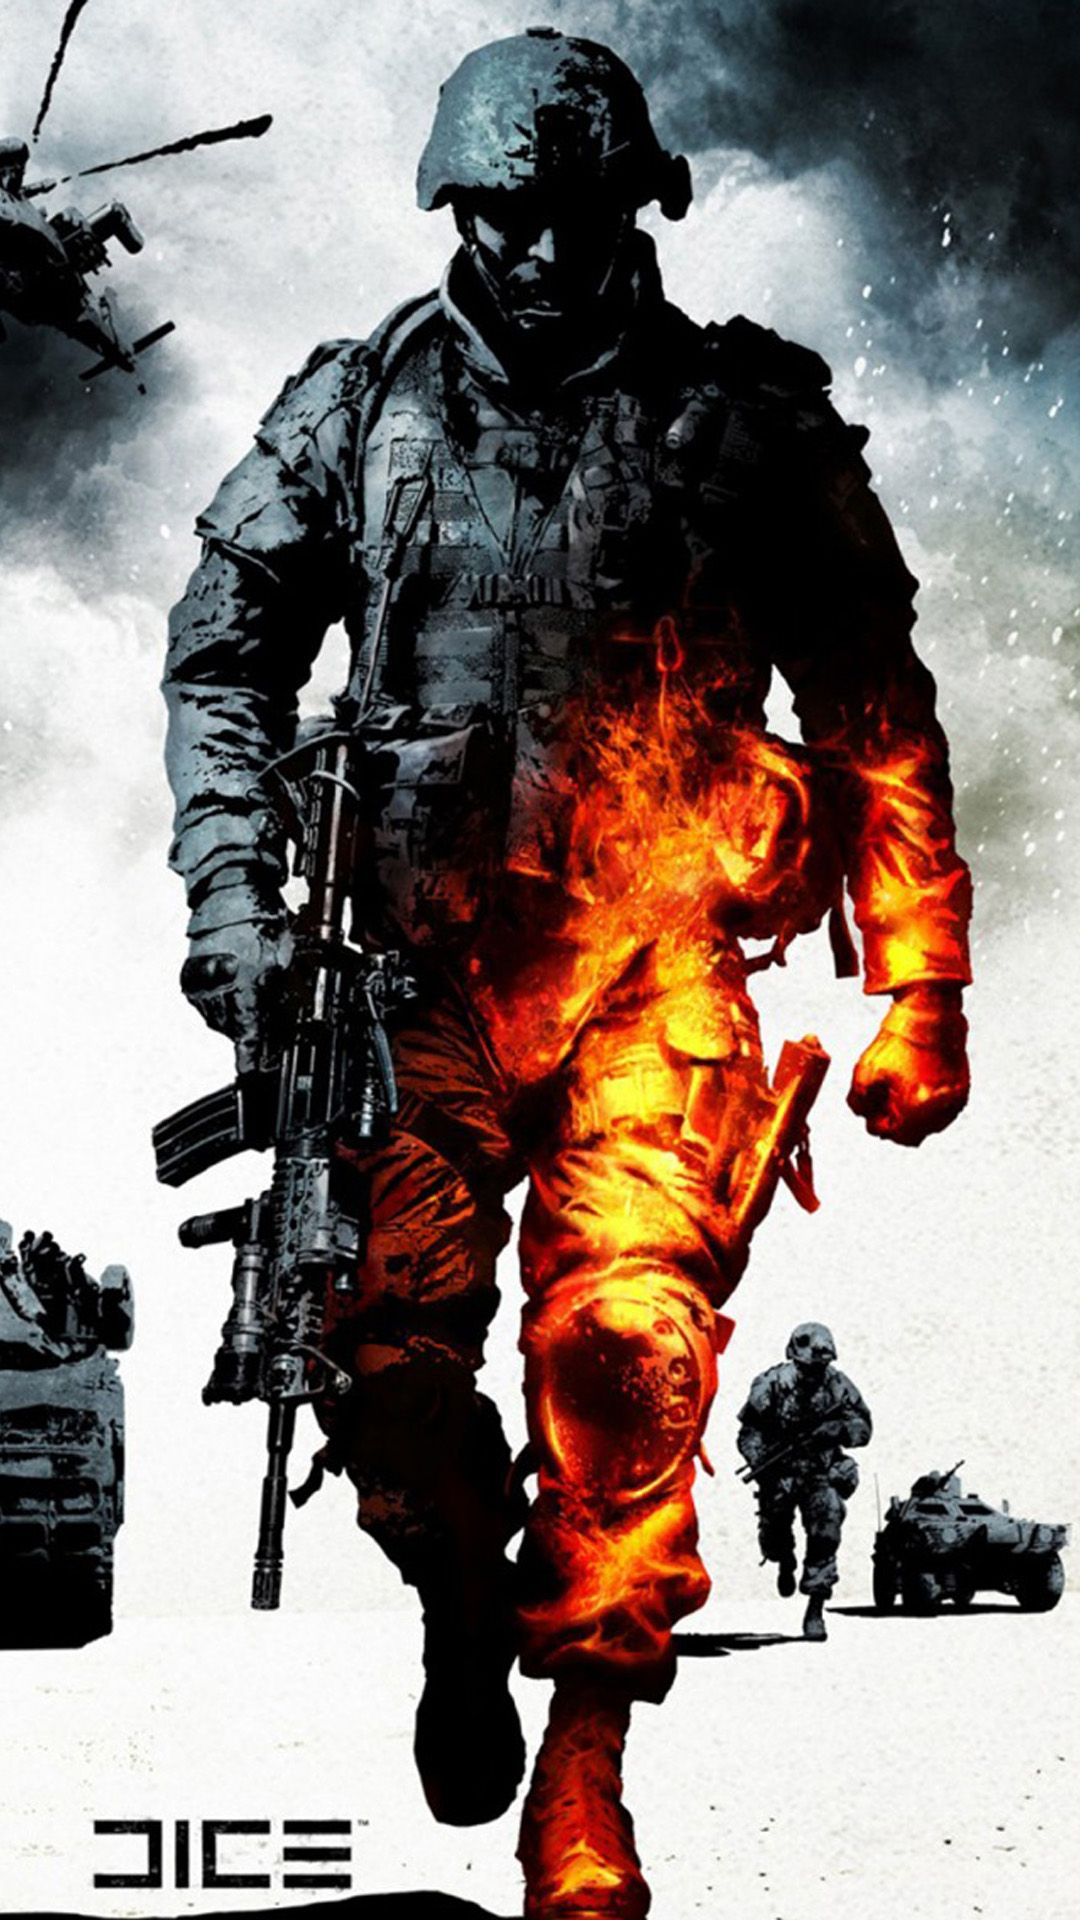 Military Burning Soldier Iphone 6 Wallpaper Download Iphone Wallpapers Ipad Wallpapers One Stop Download Indian Army Wallpapers Army Wallpaper Army Pics